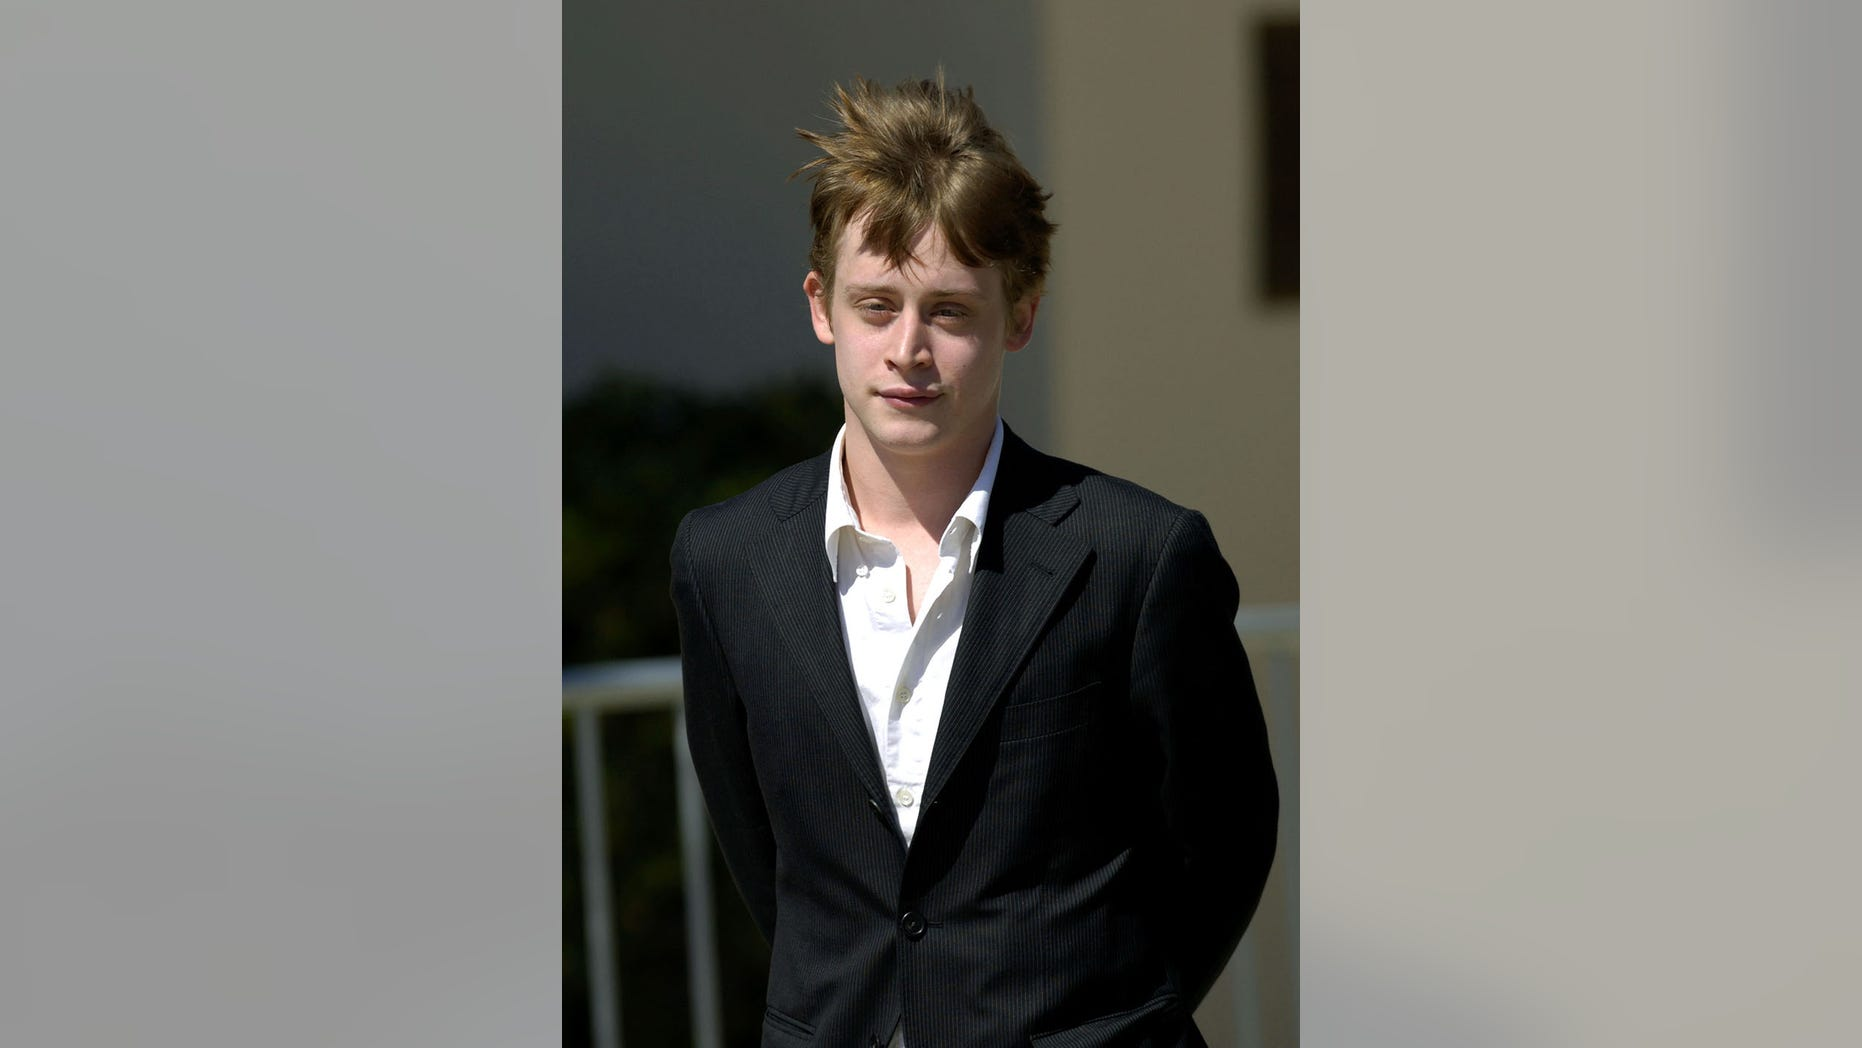 Actor Macaulay Culkin leaves the Santa Barbara county courthouse in Santa Maria, California May 11, 2005. Culkin was called in as a witness in Michael Jackson's child molestation trial. - PBEAHUOAFDN